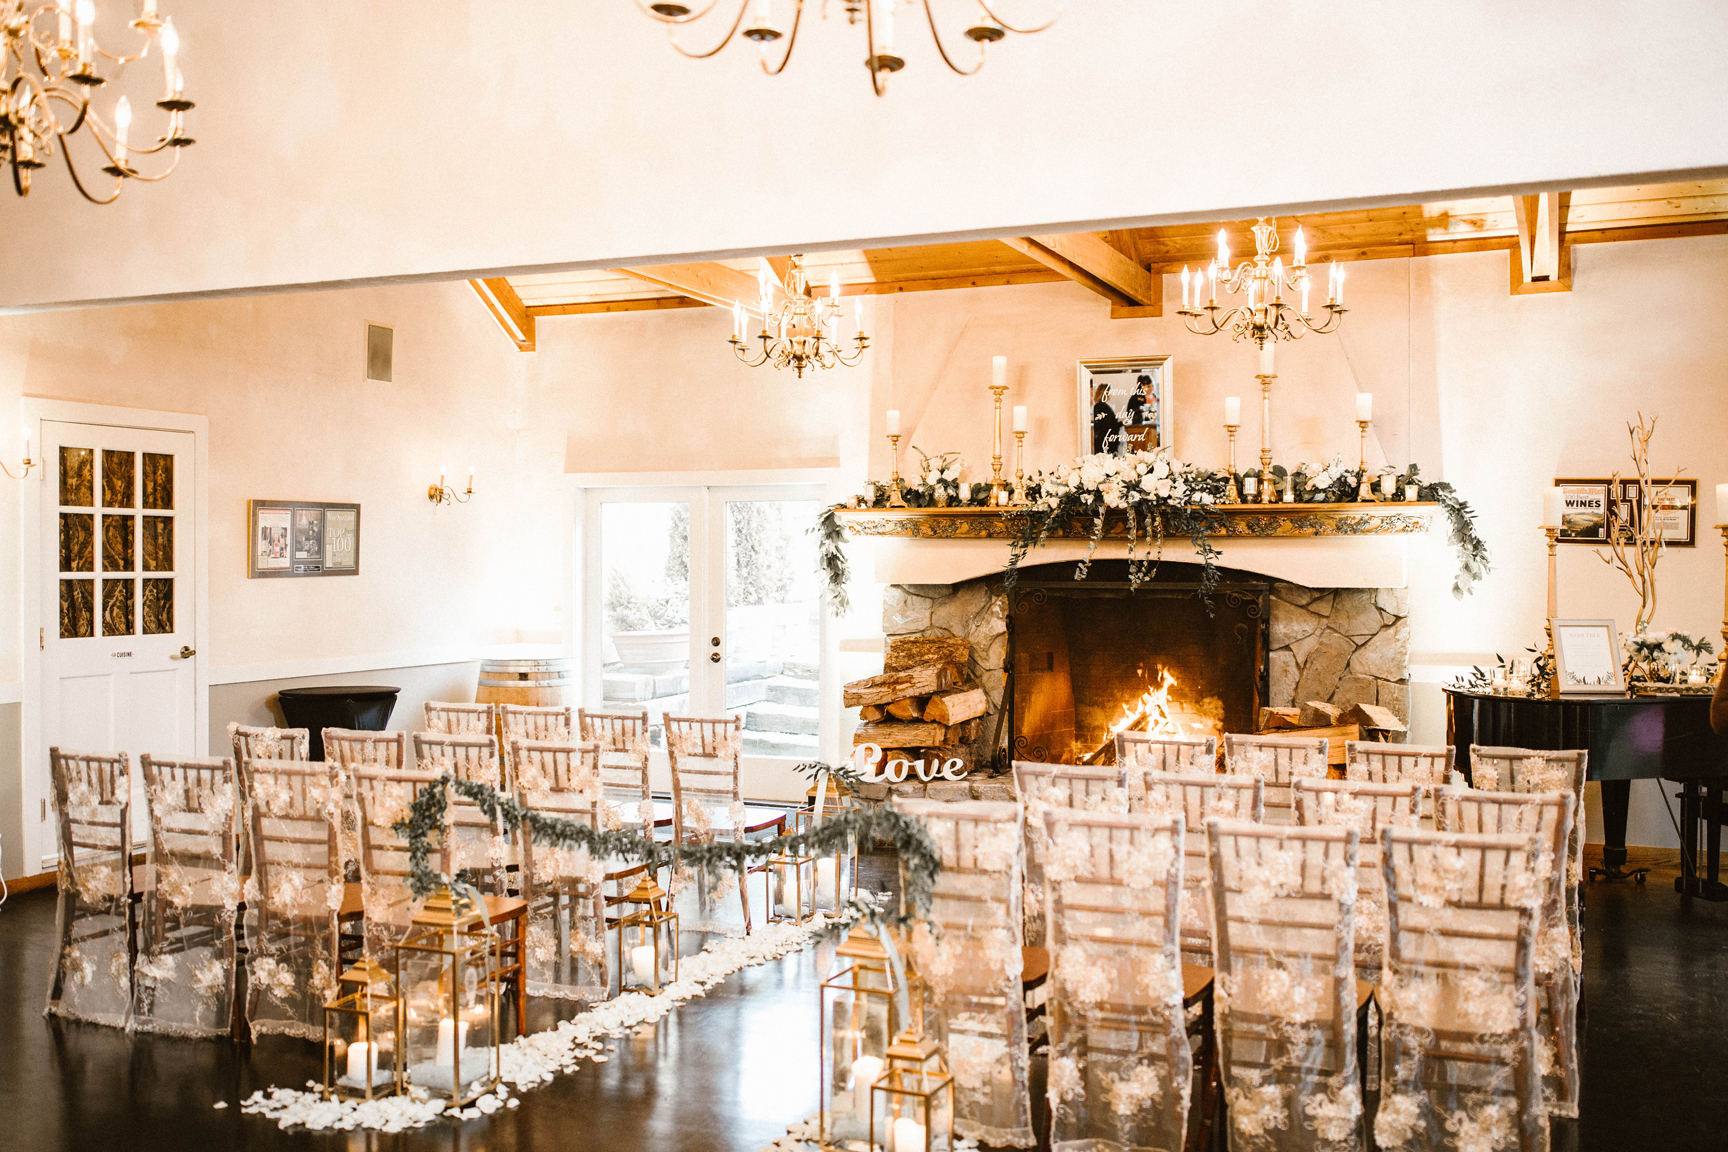 DeLille+Cellars_The+Chateau_Woodinville_2017_Weddings+In+Woodinville98.jpg